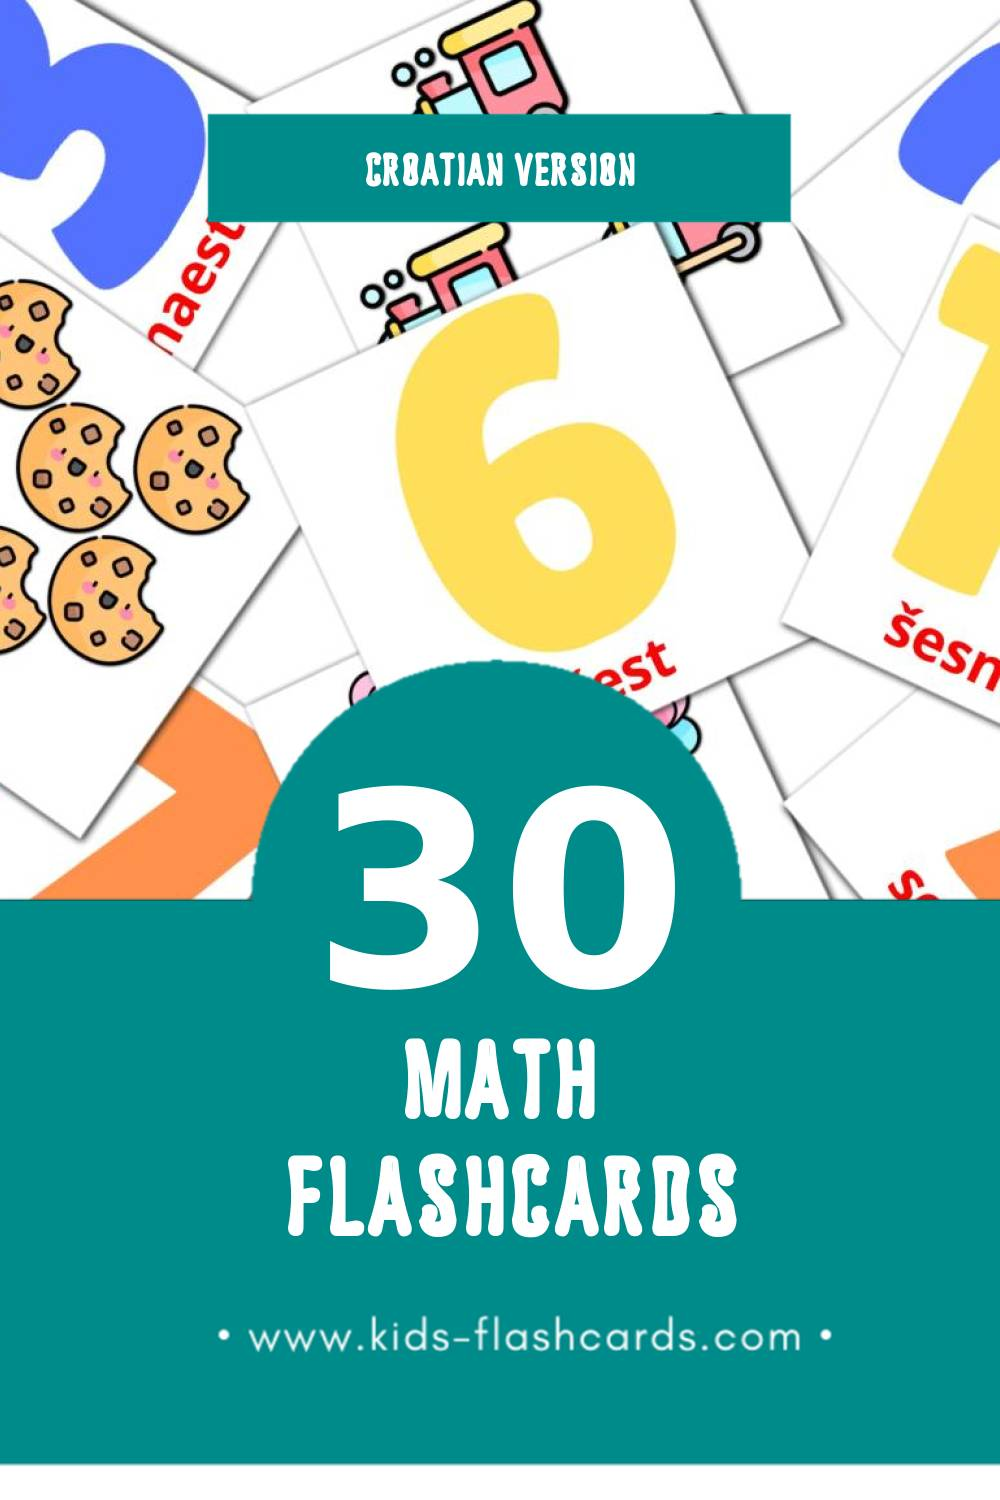 Visual Matematika Flashcards for Toddlers (30 cards in Croatian)